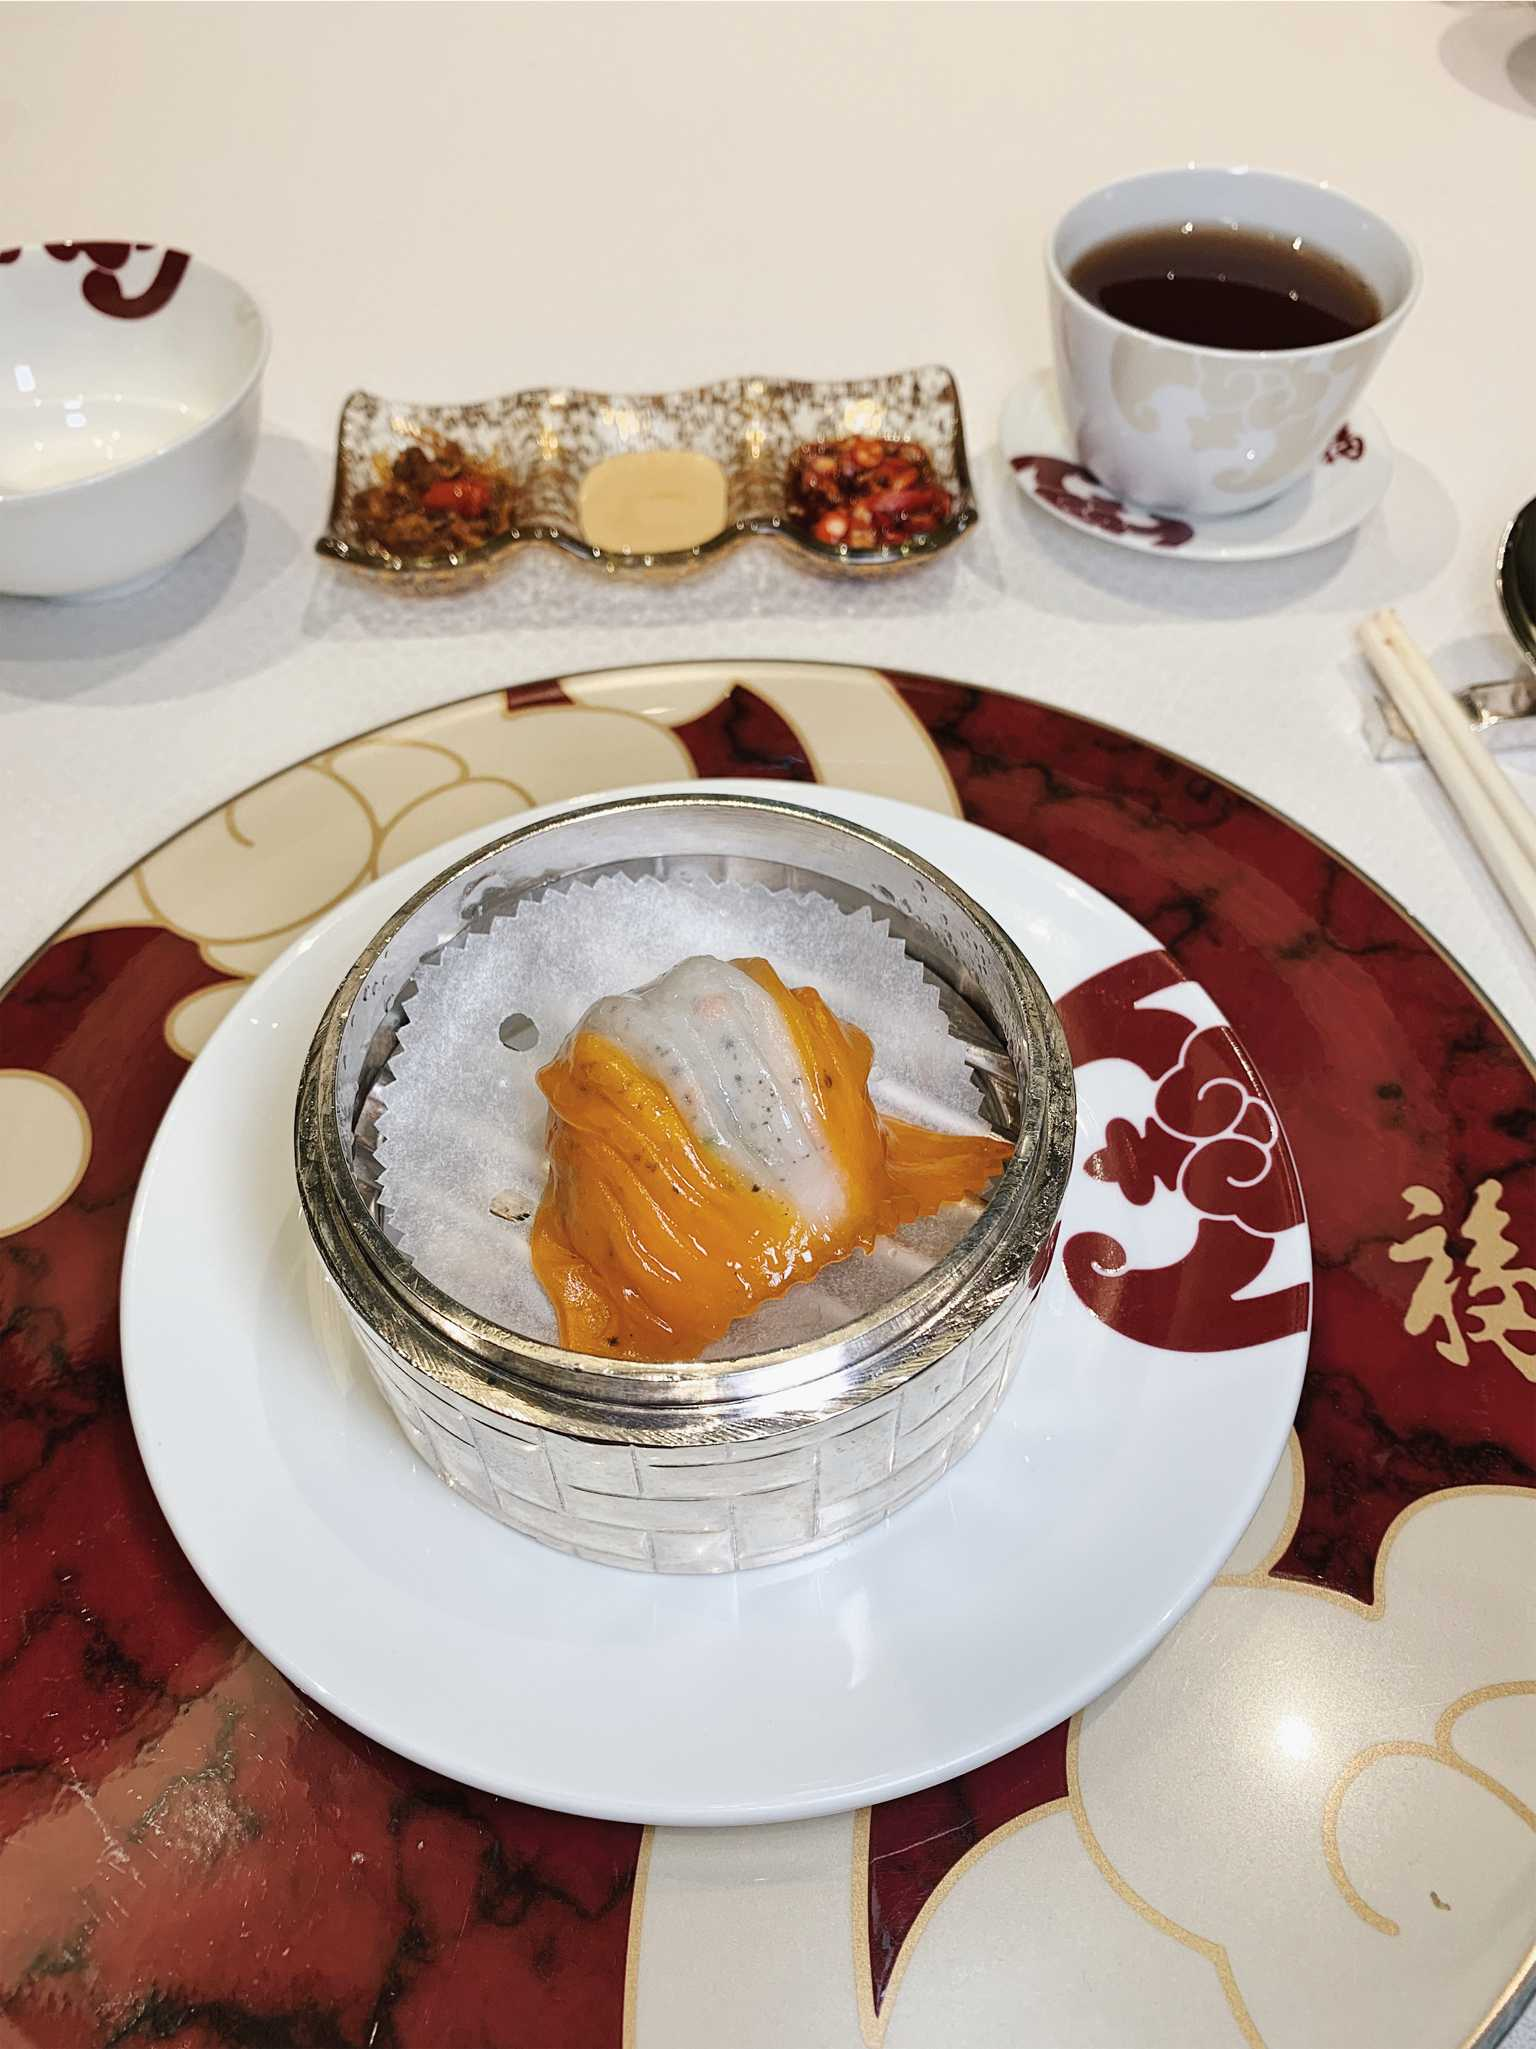 Galaxy Macau Fook Lam Moon dim sum steamed lobster dumpling with truffle